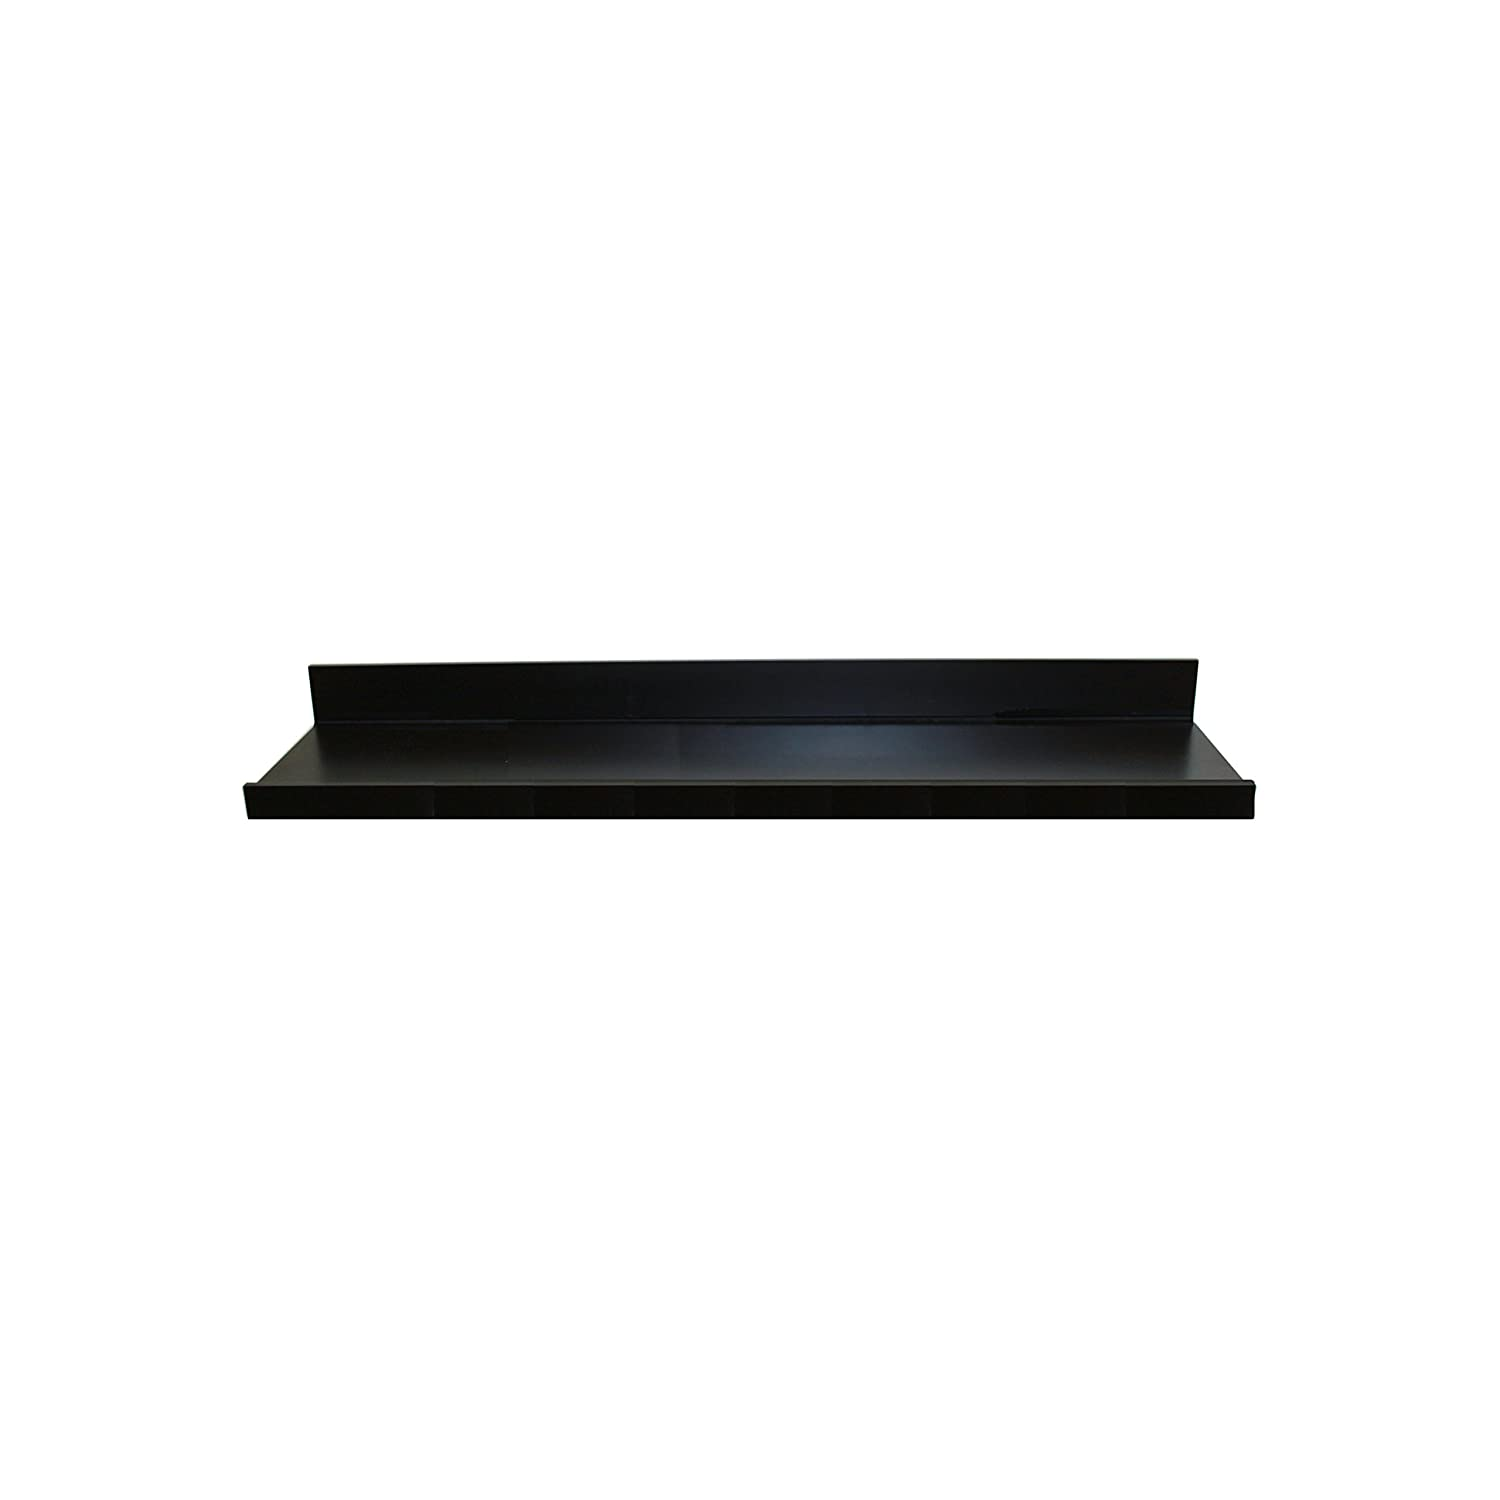 Amazon.com: InPlace Shelving 9084680 Picture Ledge Floating Shelf, 36-Inch  Long, Black: Home Improvement